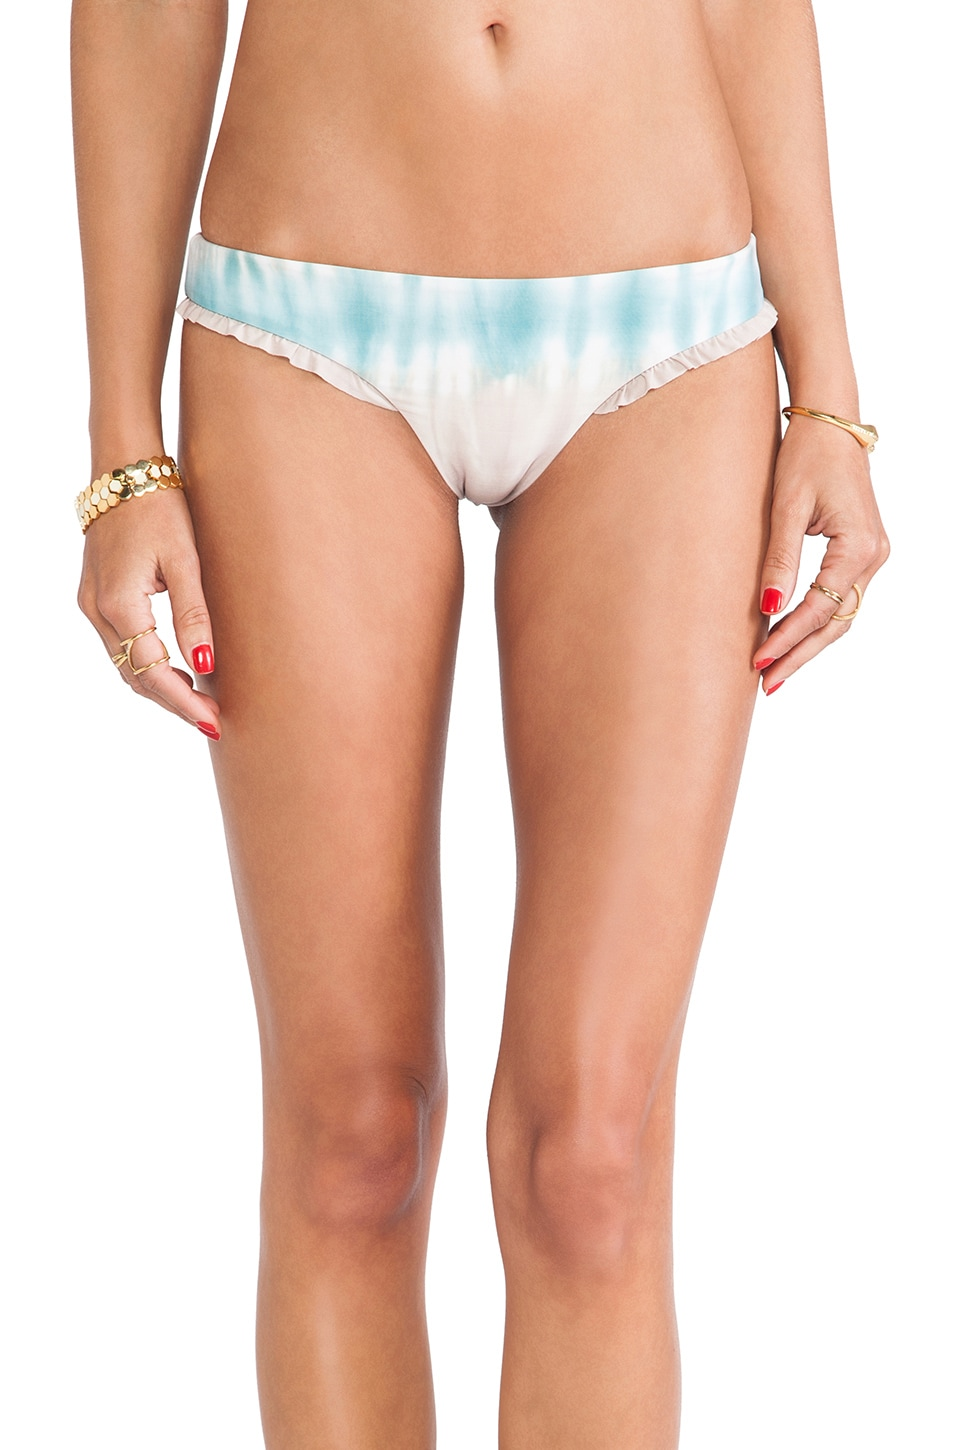 Blue Life Gobi Brazillian Ruffle Bottom in Juniper Tie Dye